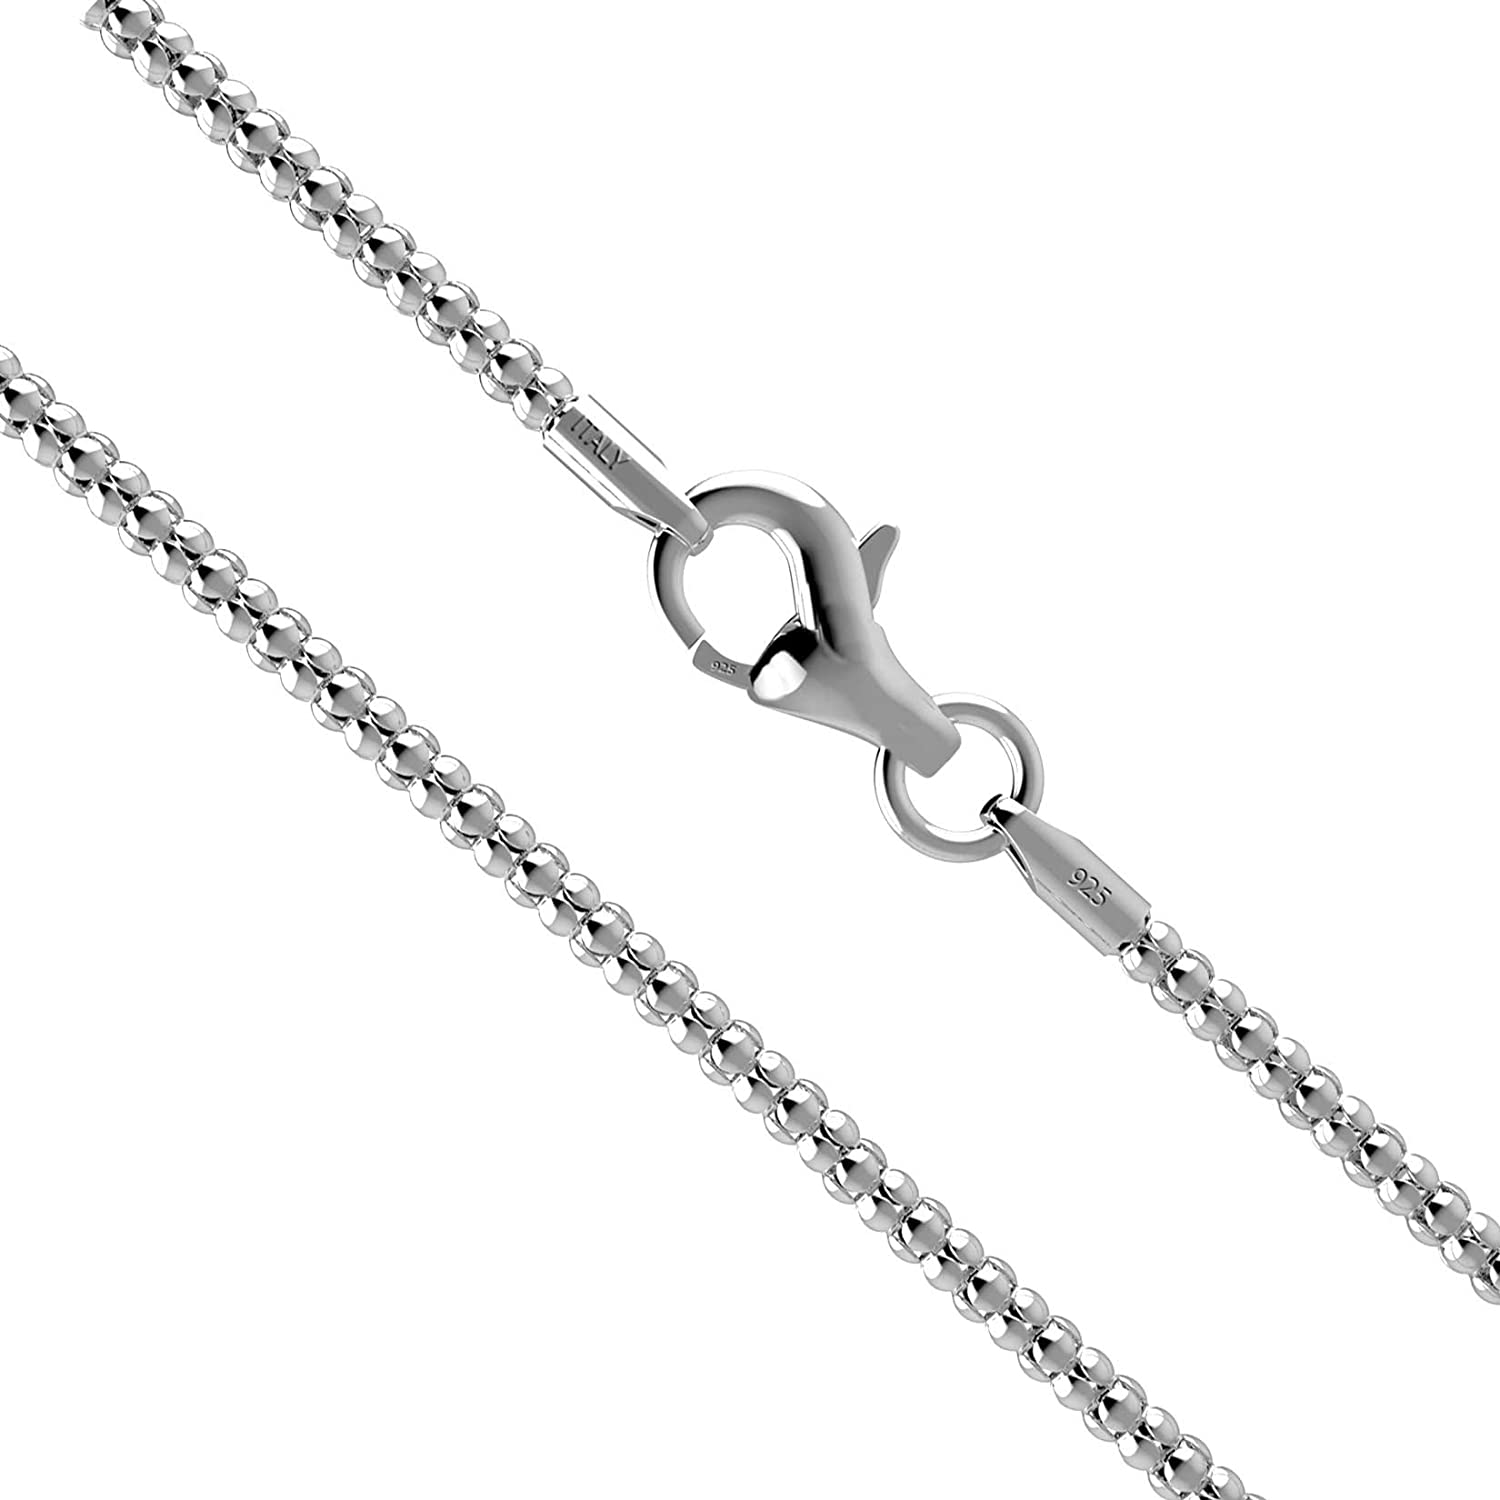 KEZEF Sterling Silver 925 Rose Gold Plated Popcorn Chain 1.6mm Made in Italy IR58W